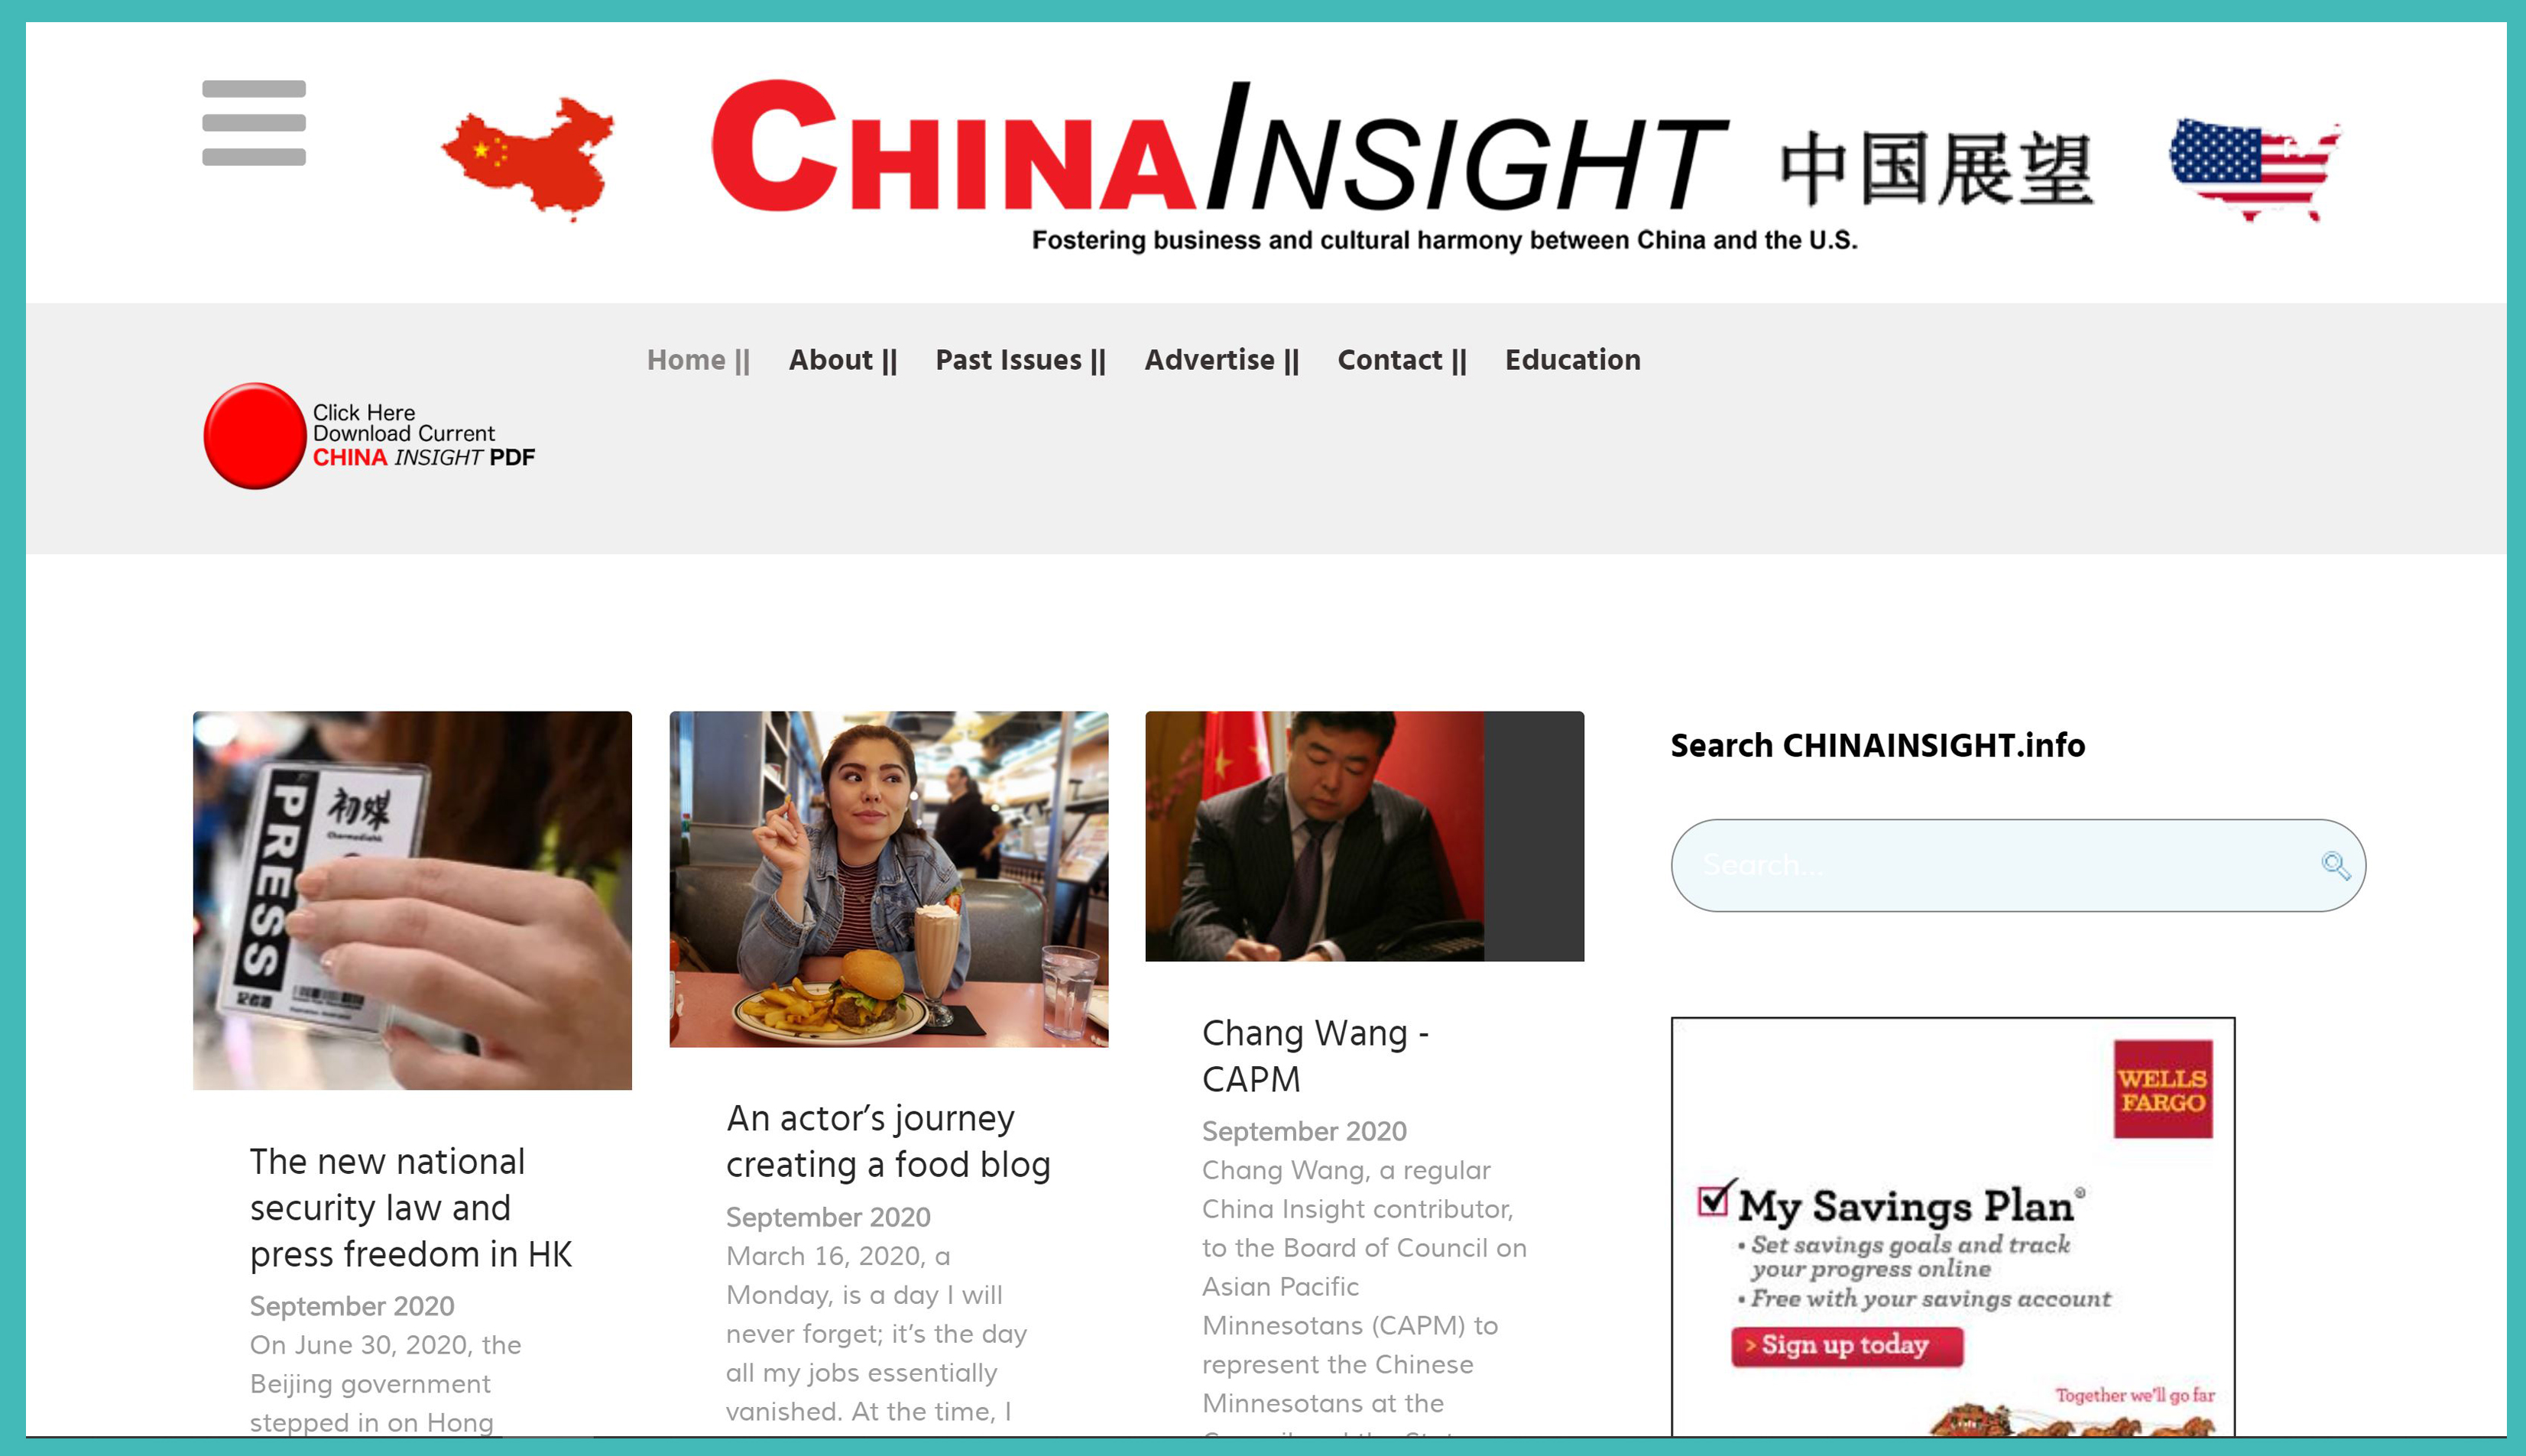 The Webpage of the China Insight Newspaper, photo of me eating fries in a diner with several articles listed below